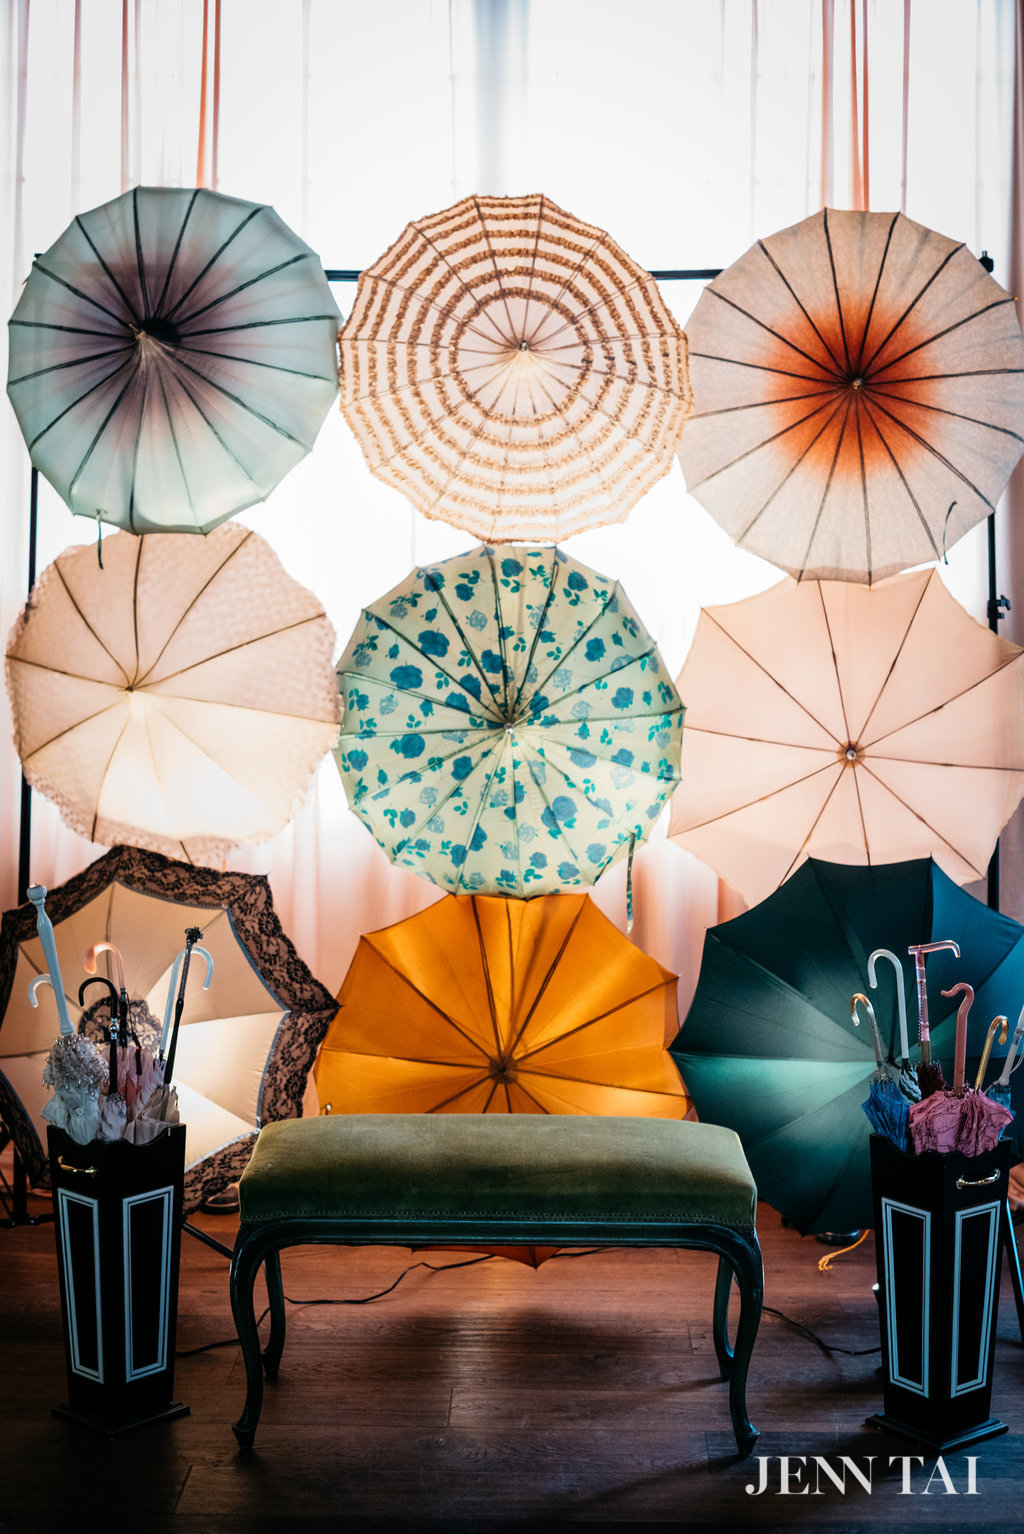 Our favorite new feature here at Bella Umbrella is our gorgeous Umbrella Wall!